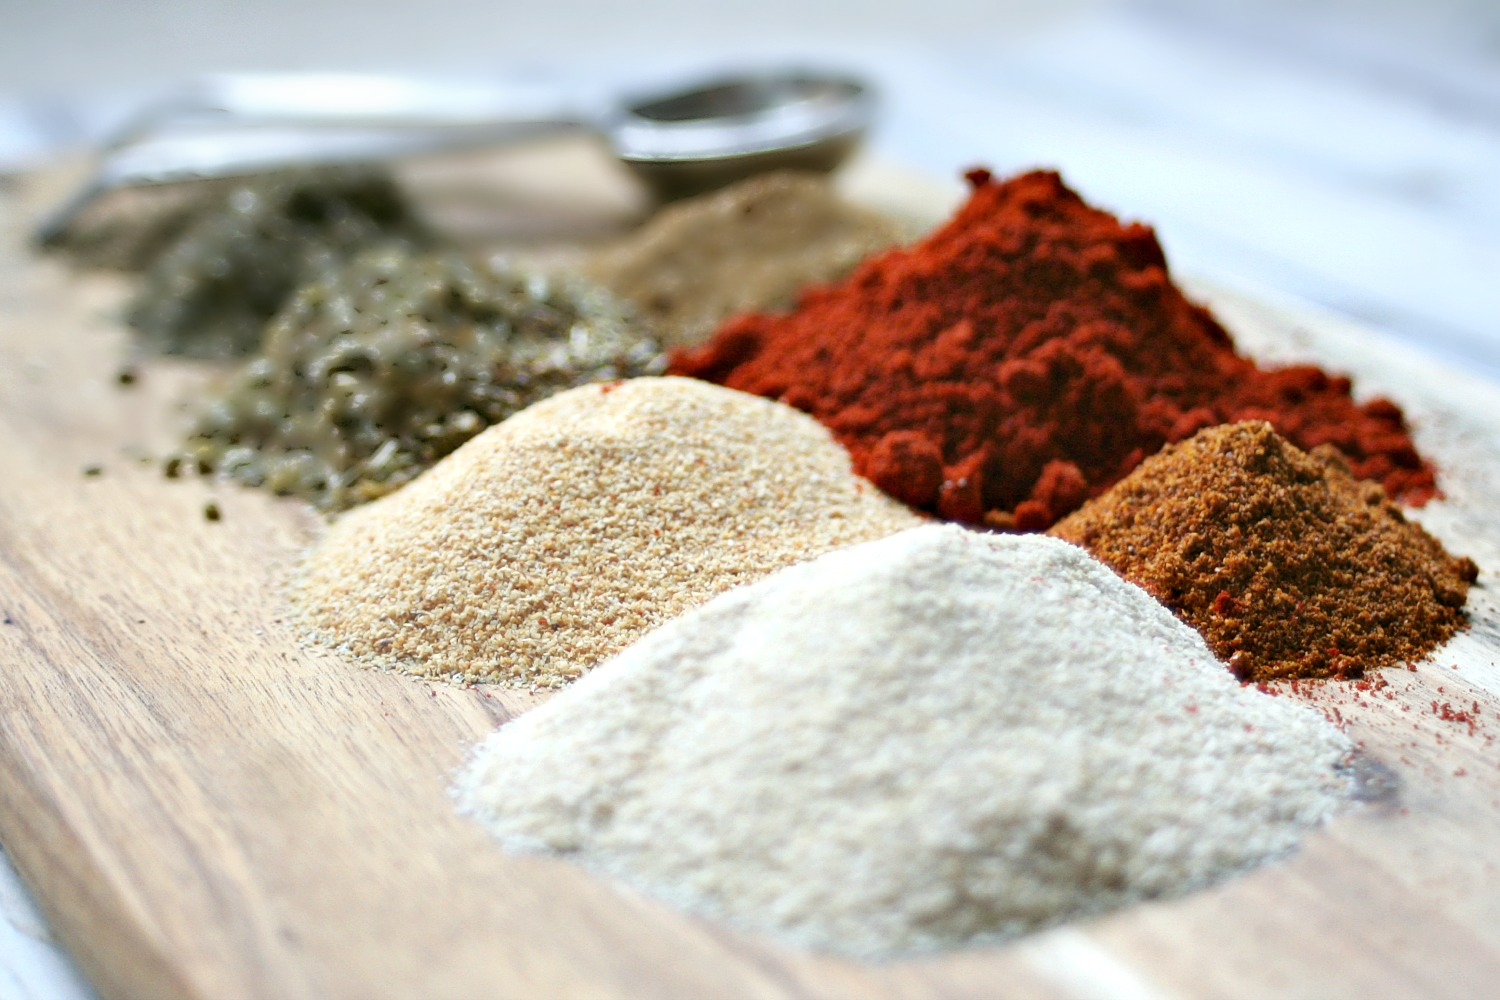 How To Make Red Chili Powder At Home